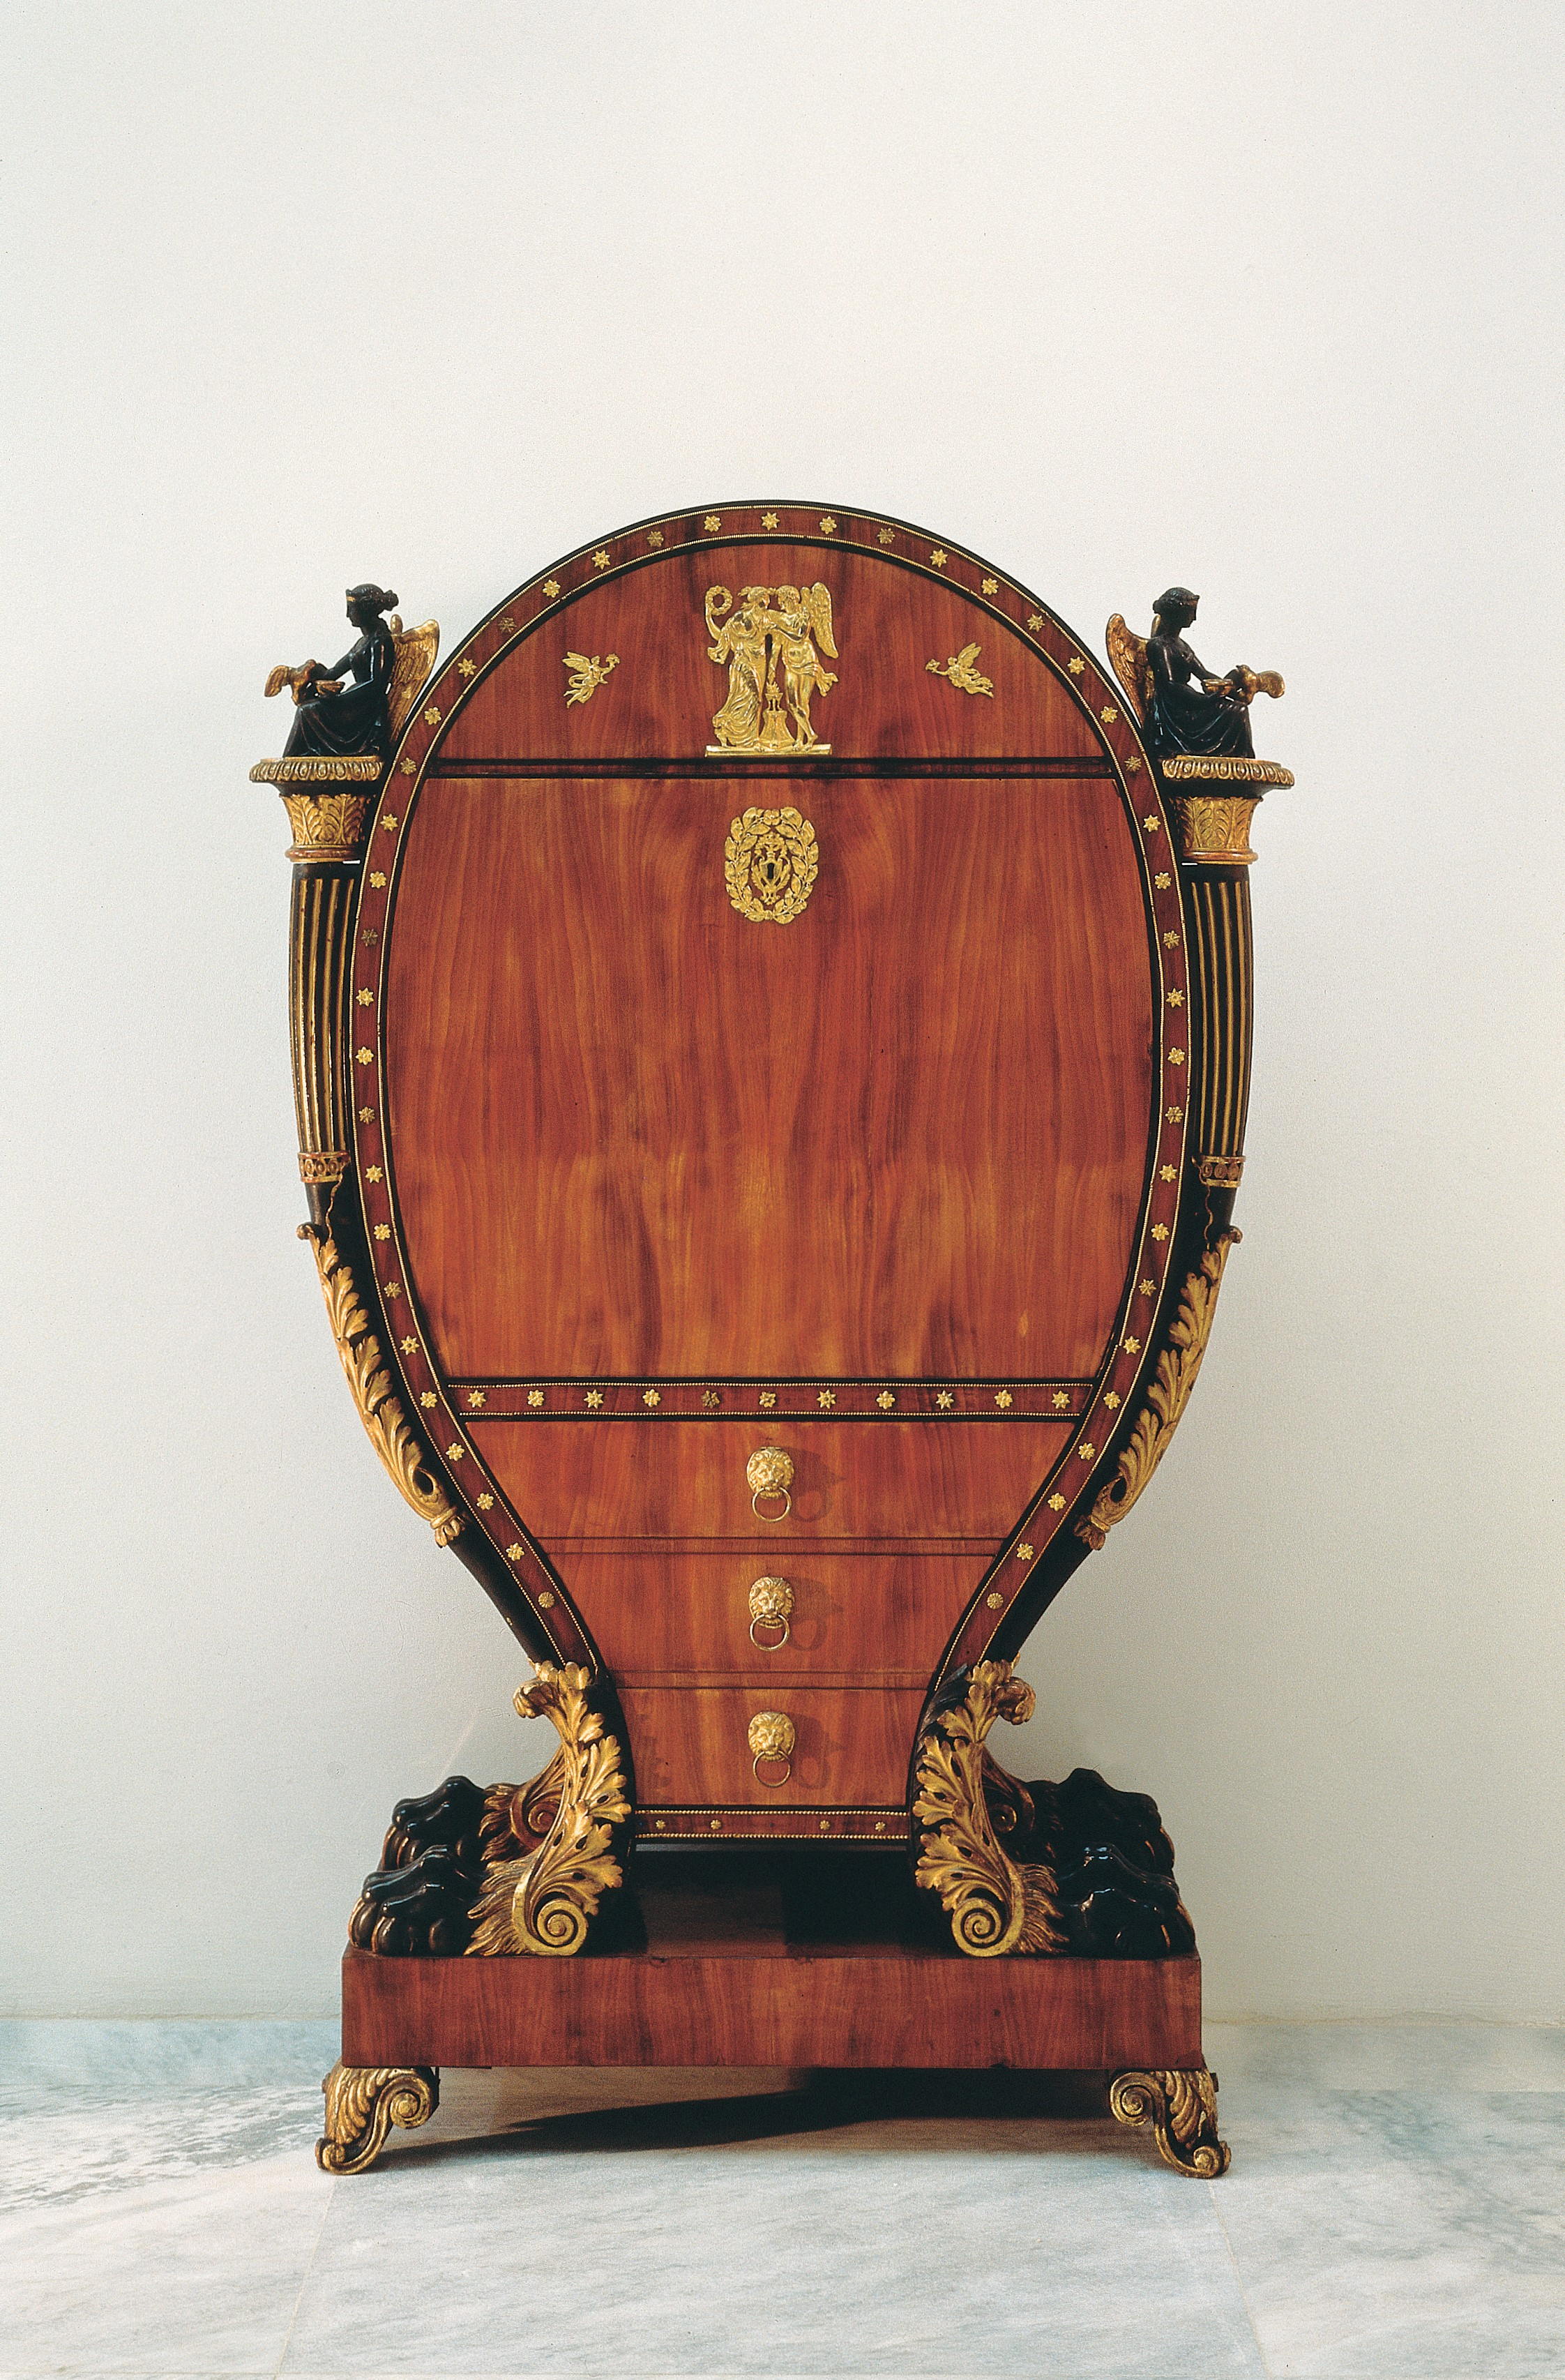 <BODY><div>BUREAU CABINET</div><div>Vienna, ca. 1815</div><div>Mahogany, black-stained wood, carved limewood, partly painted black and with verde-antique finish, partly gilded and bronzed; gilt brass and bronze fittings, partly solid and pressed; inside maple and red-stained grained wood</div><div>H 2027 / 1955</div></BODY>